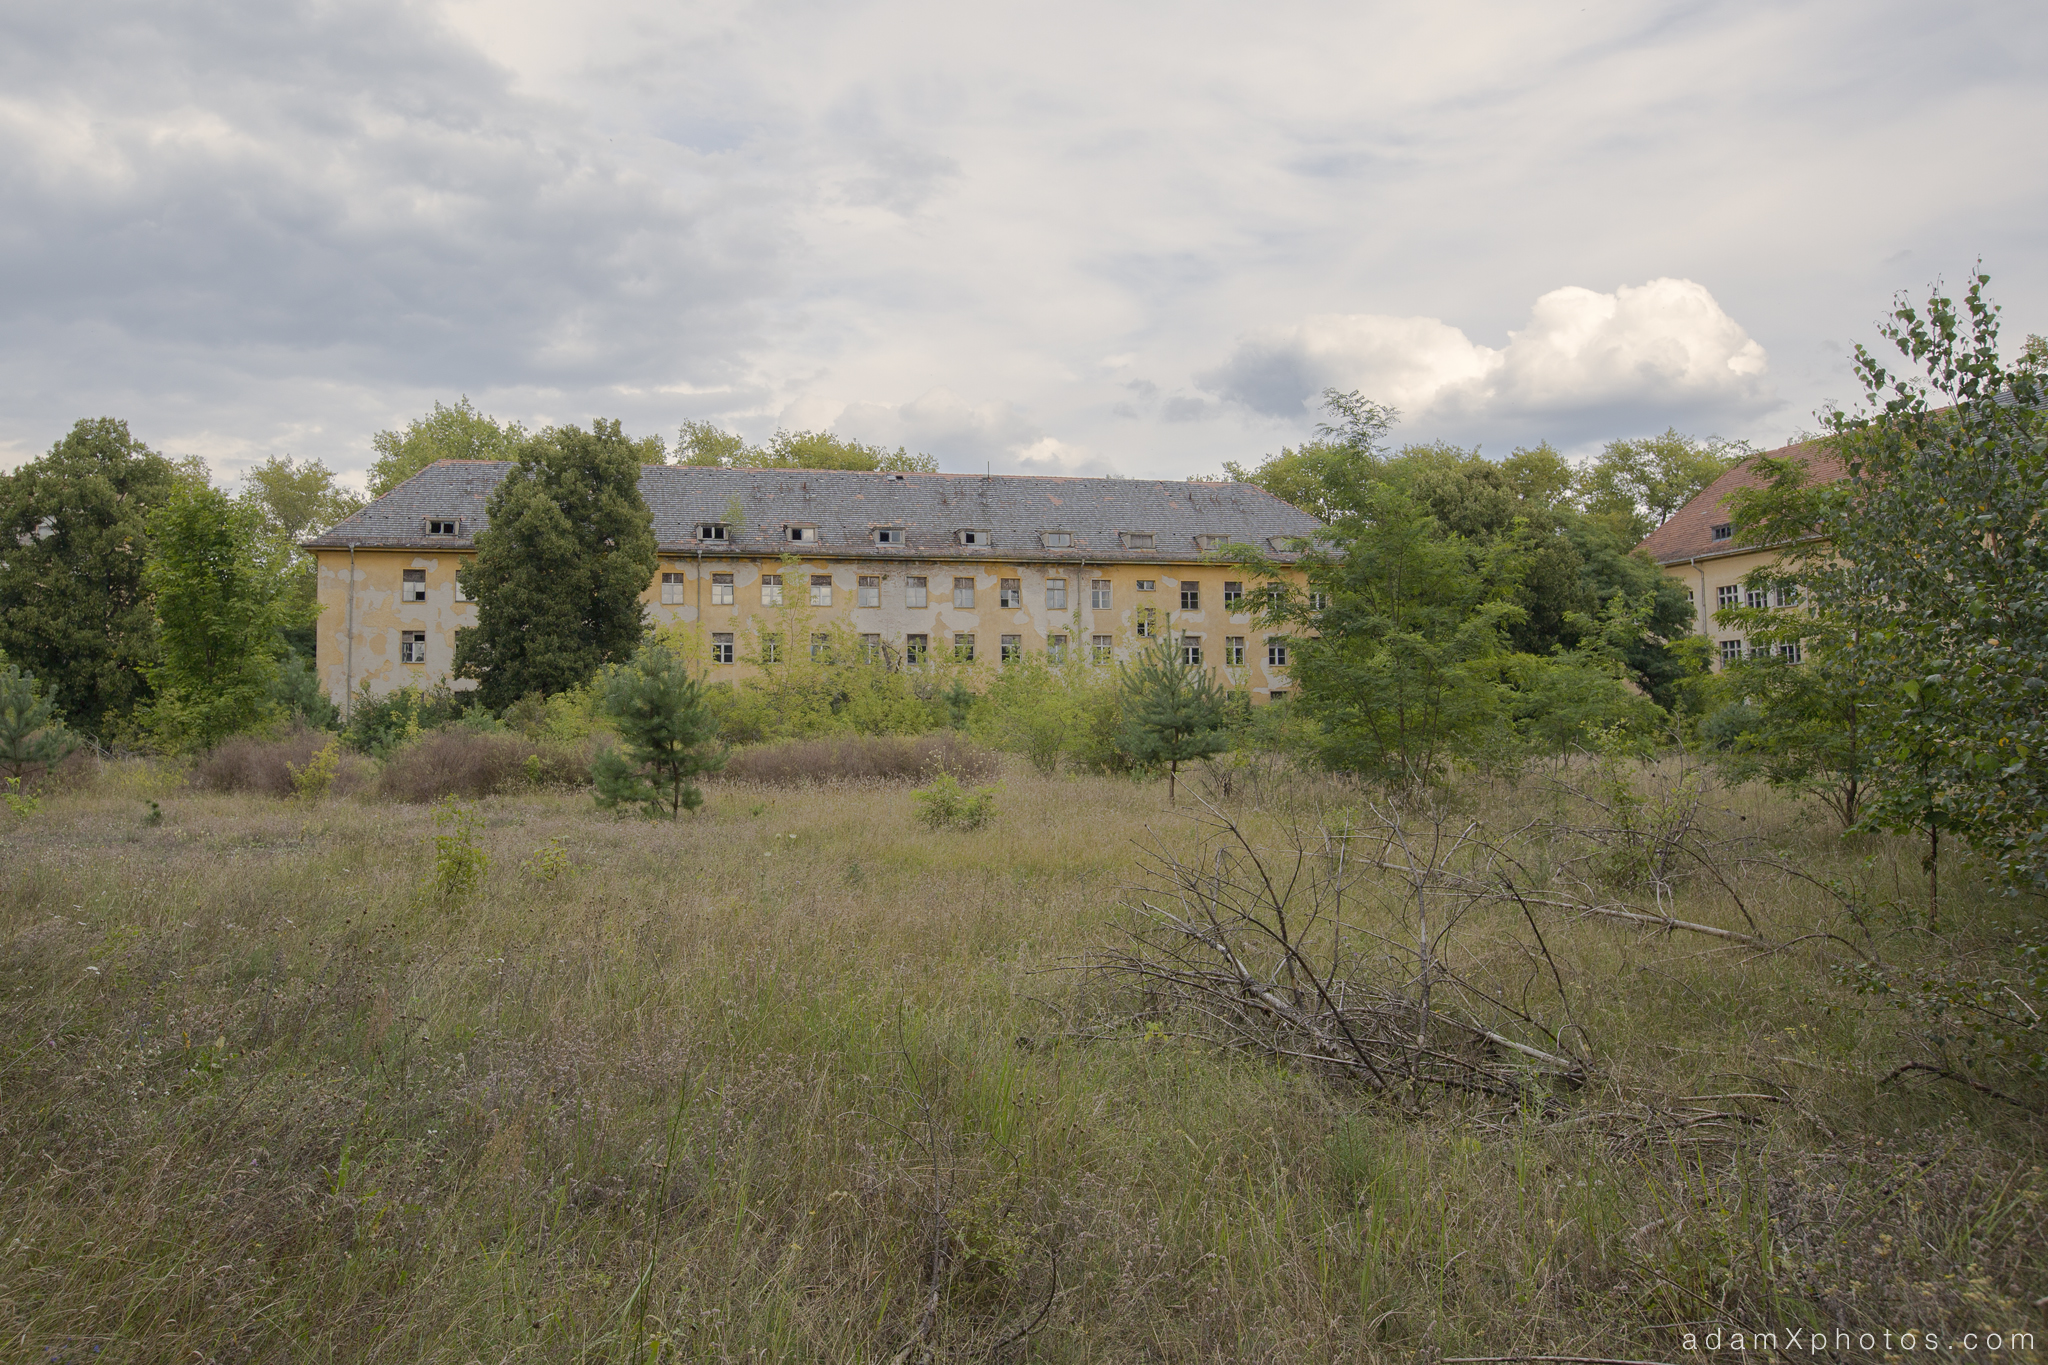 Adam X Urbex Urban Exploration Abandoned Germany Wunsdorf barracks external building